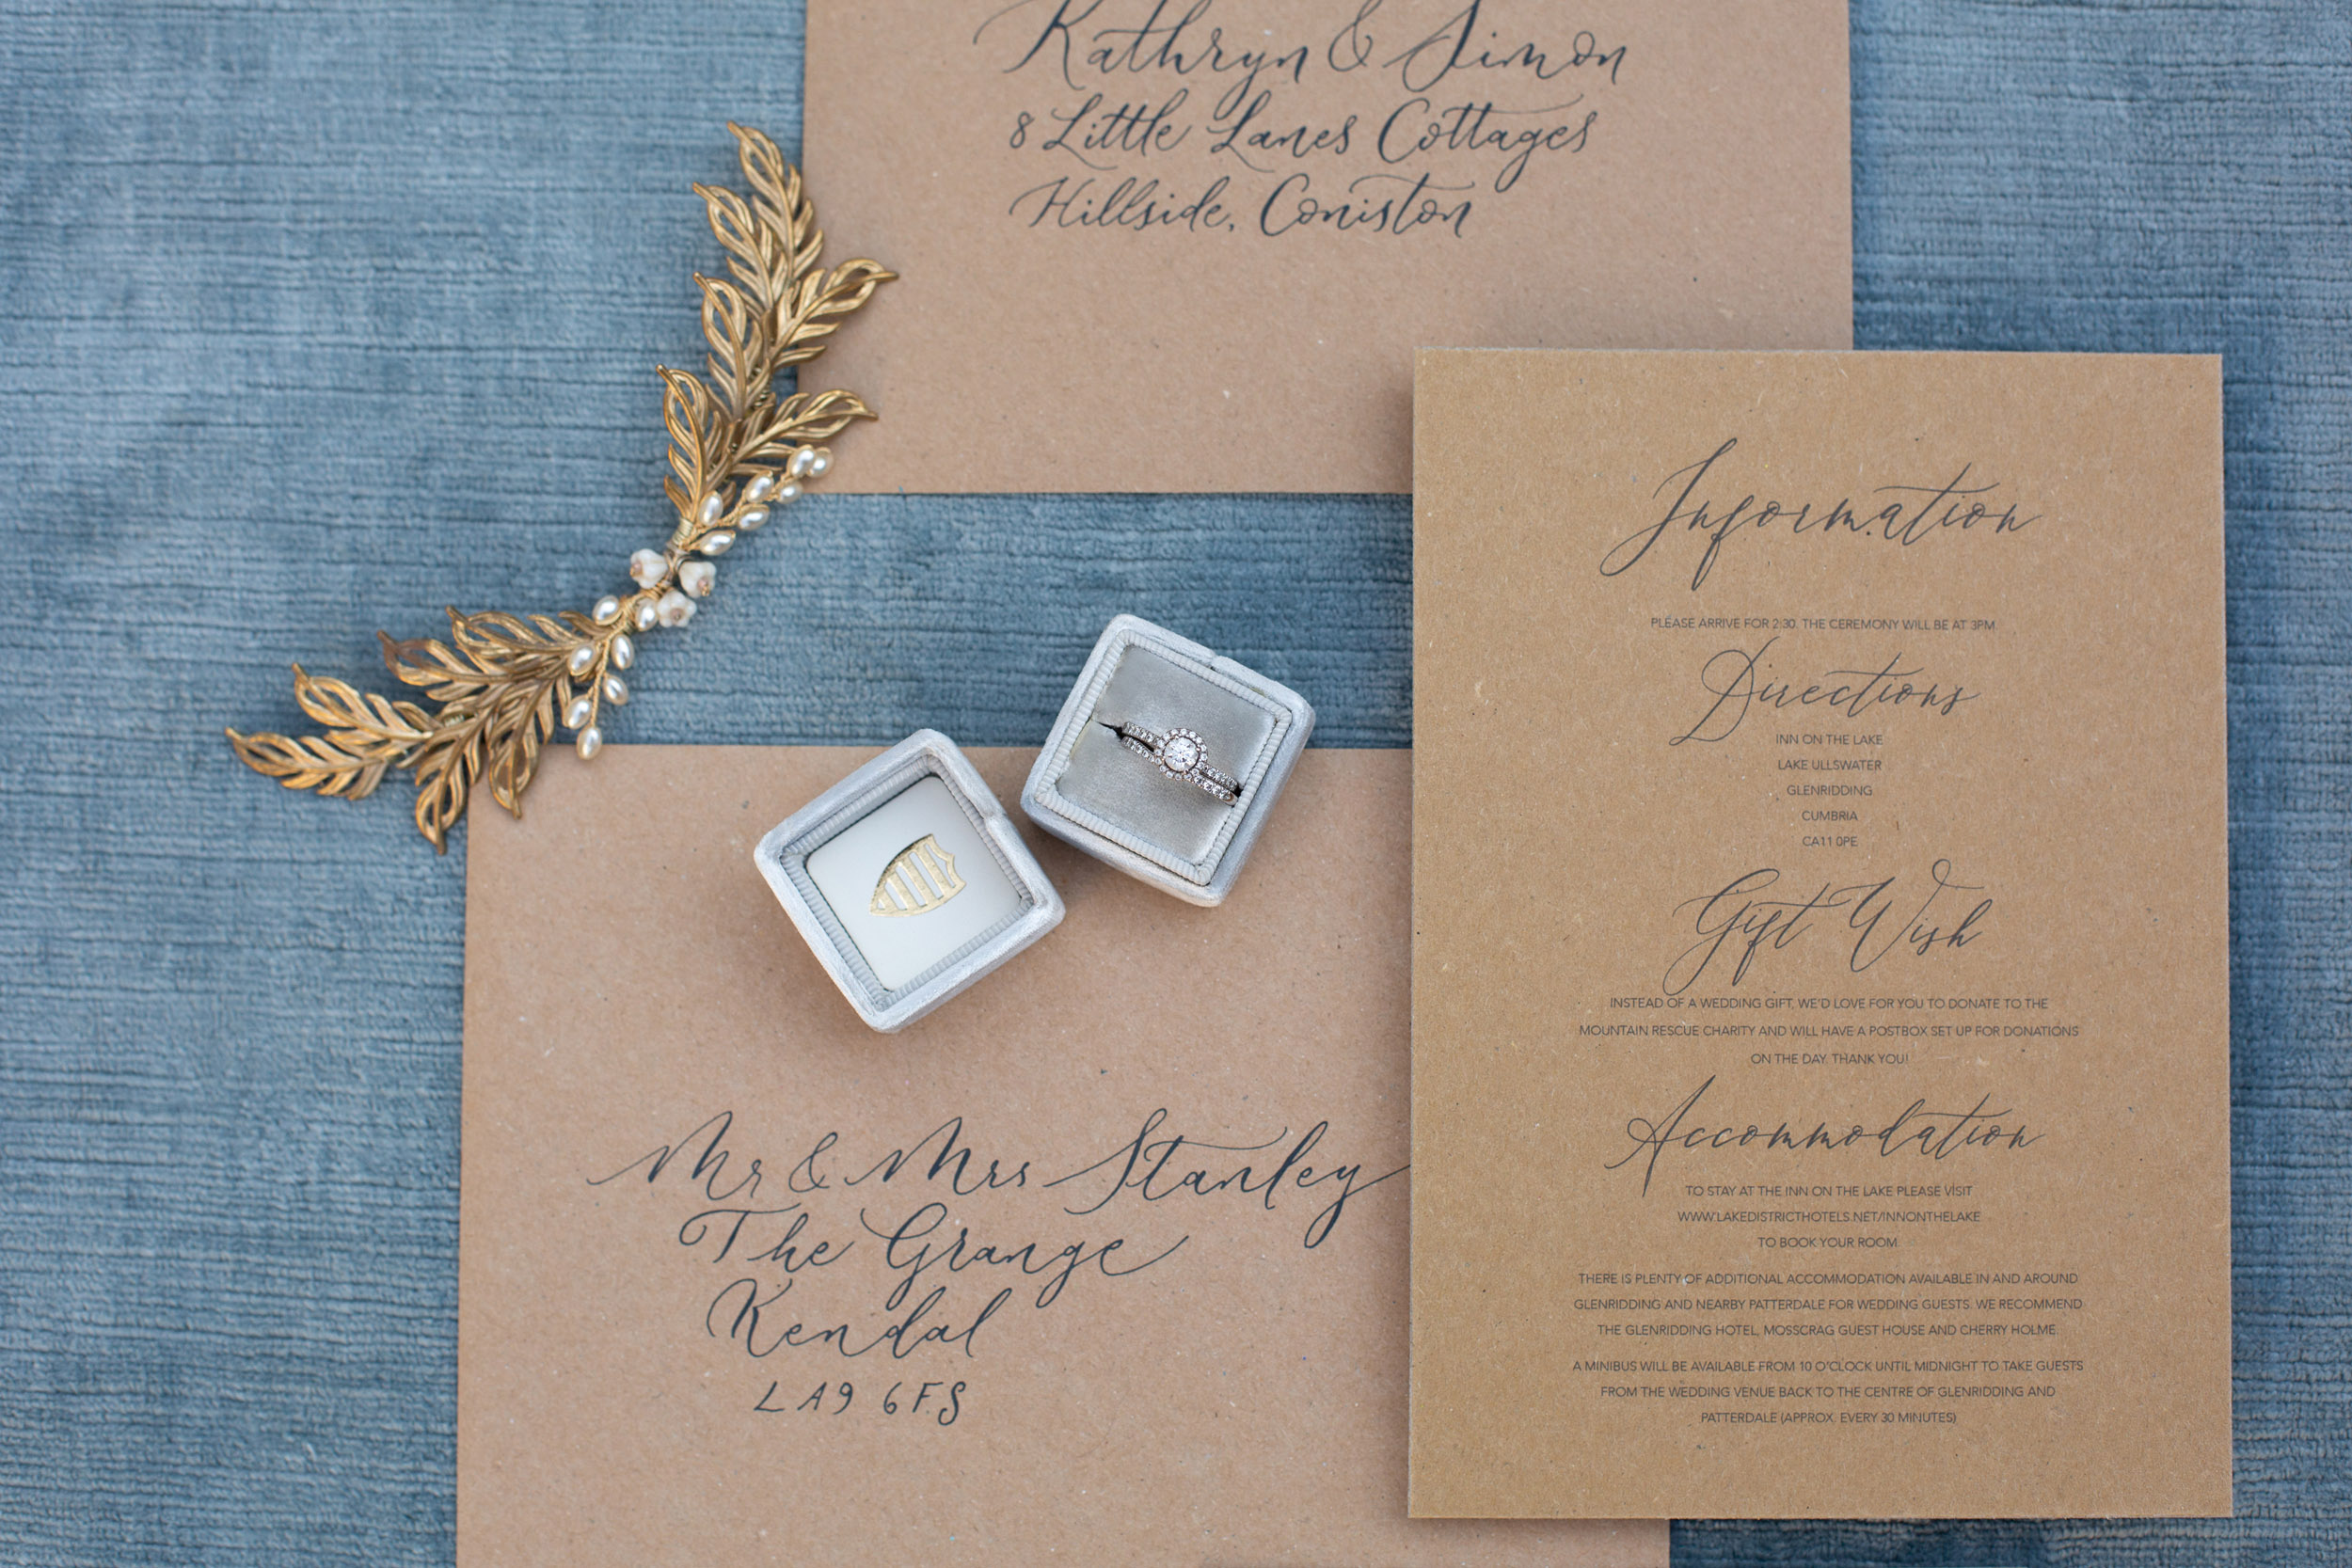 Rustic elegance sustainable wedding stationery from By Moon and Tide Calligraphy, photography credit Jess Reeve (3)